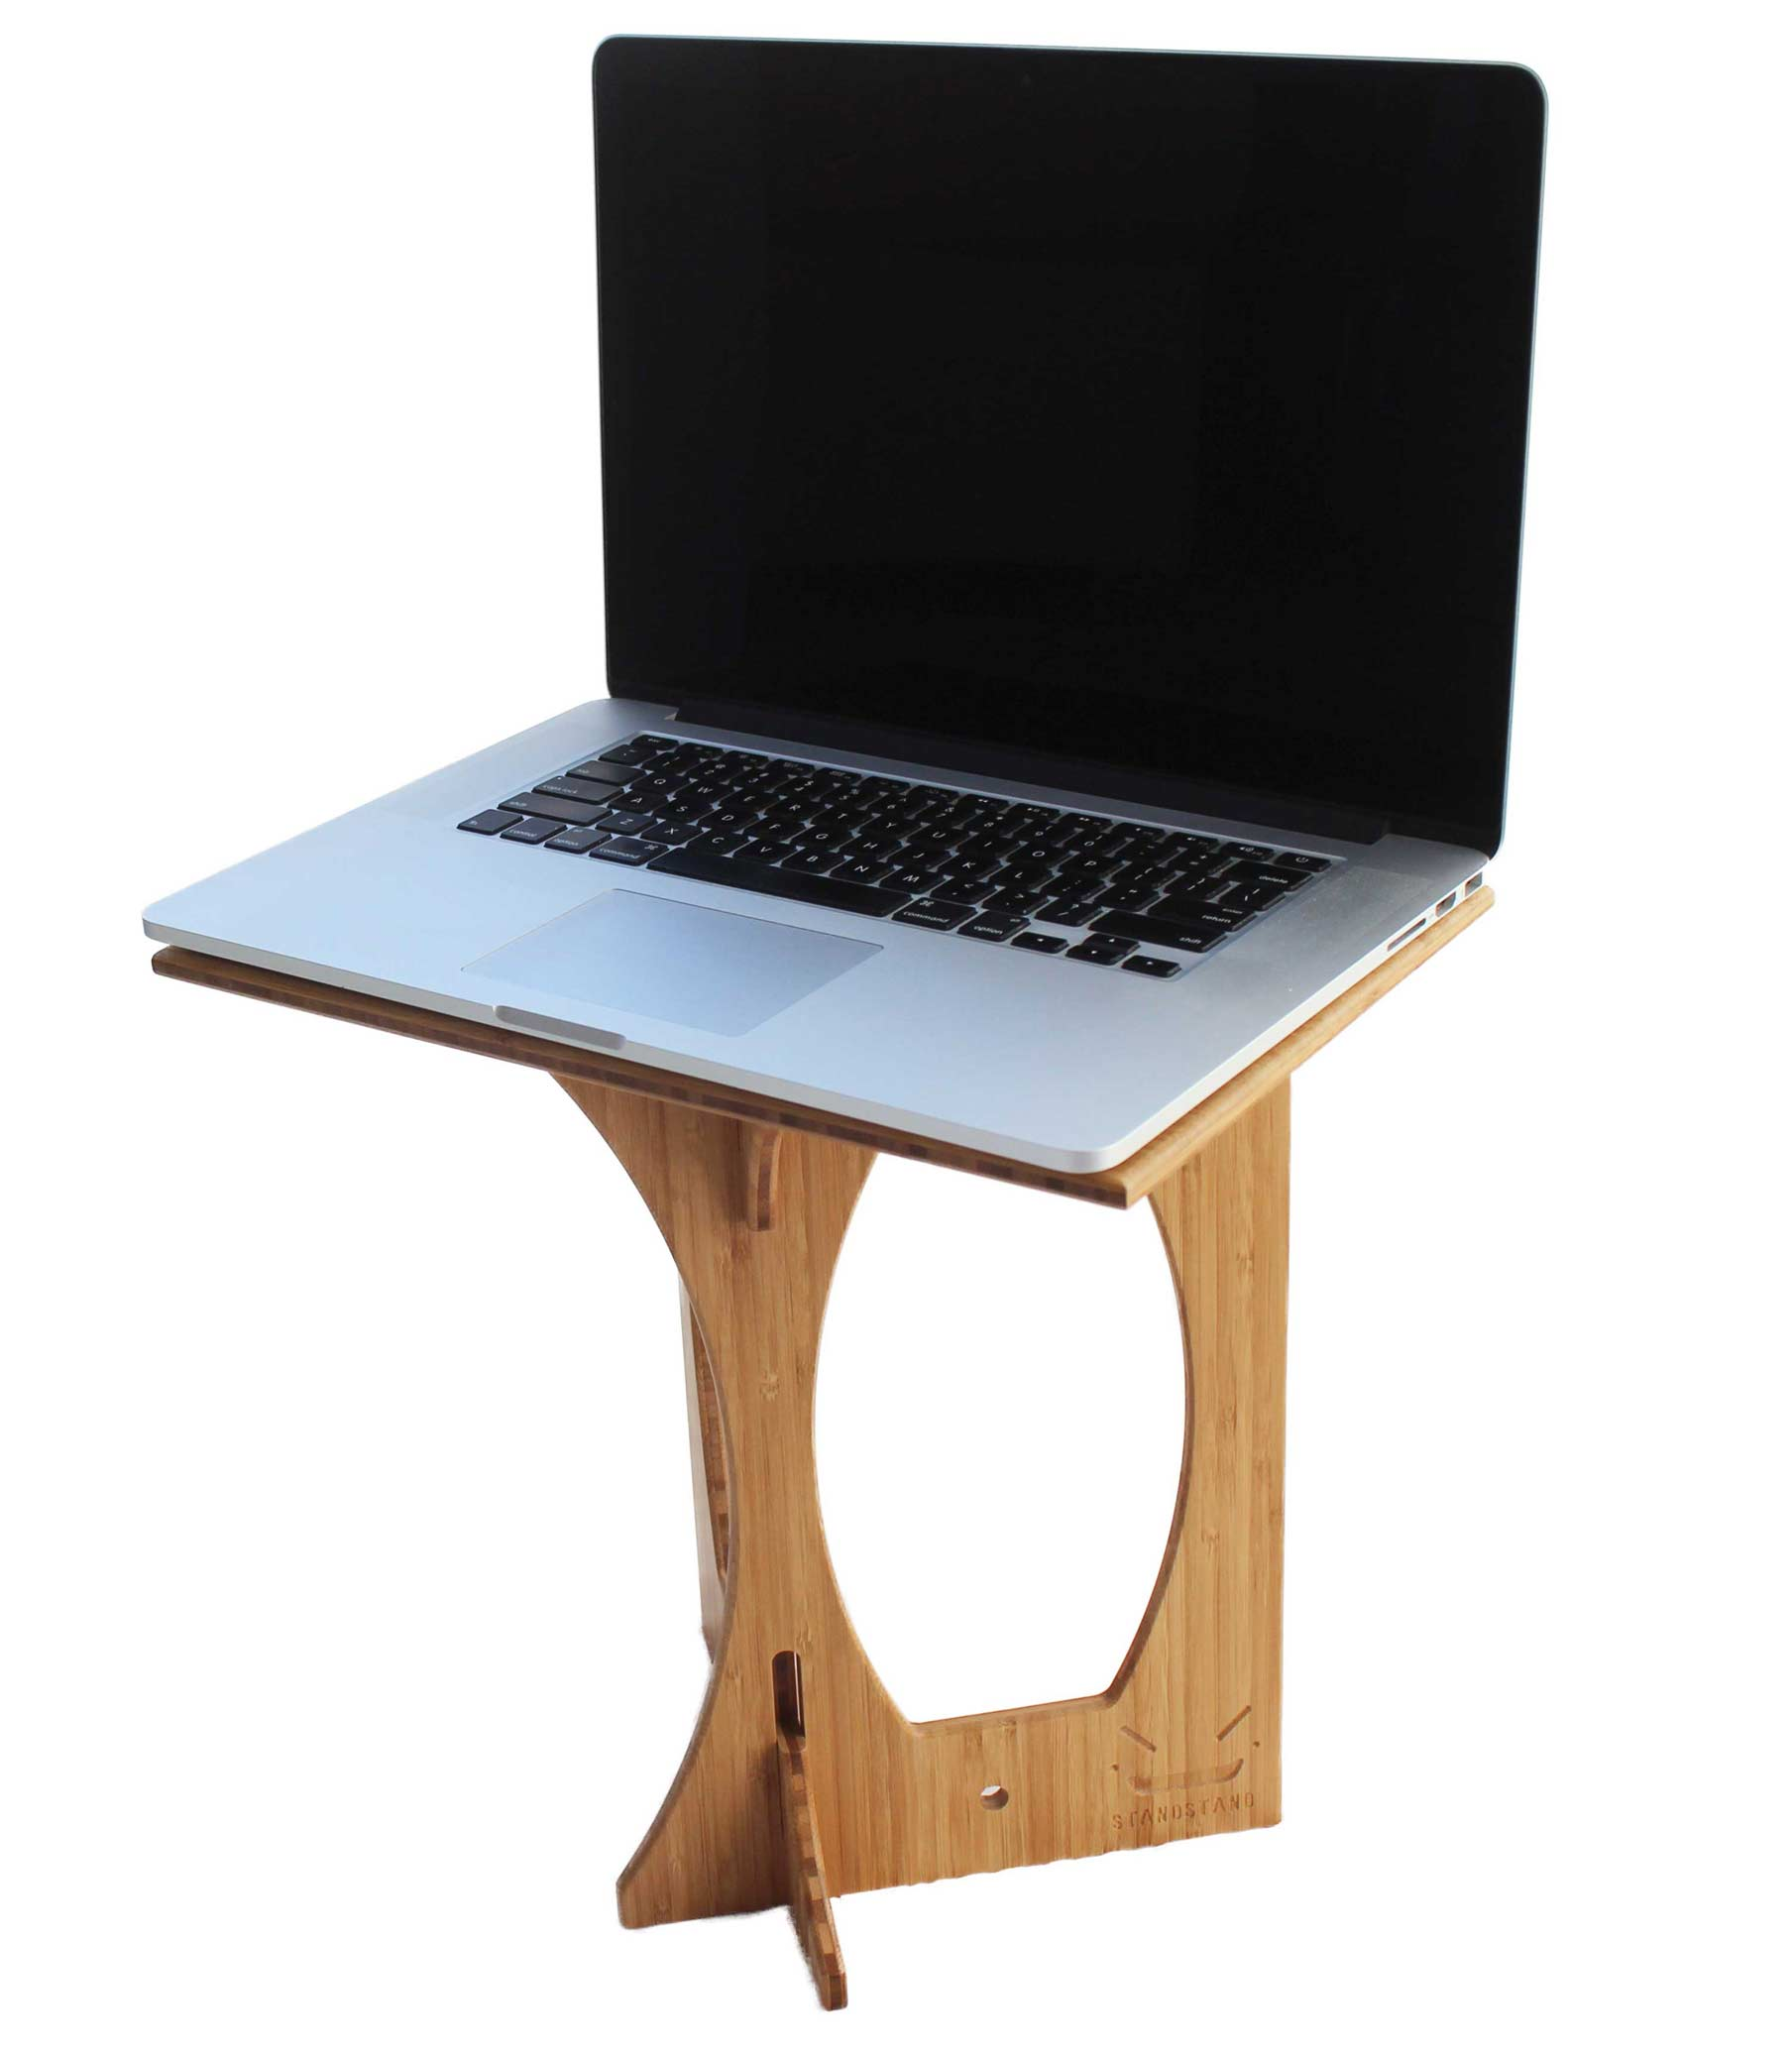 the portable standing desk laptop stand standstand rh standstand com folding standing laptop desk folding standing laptop desk